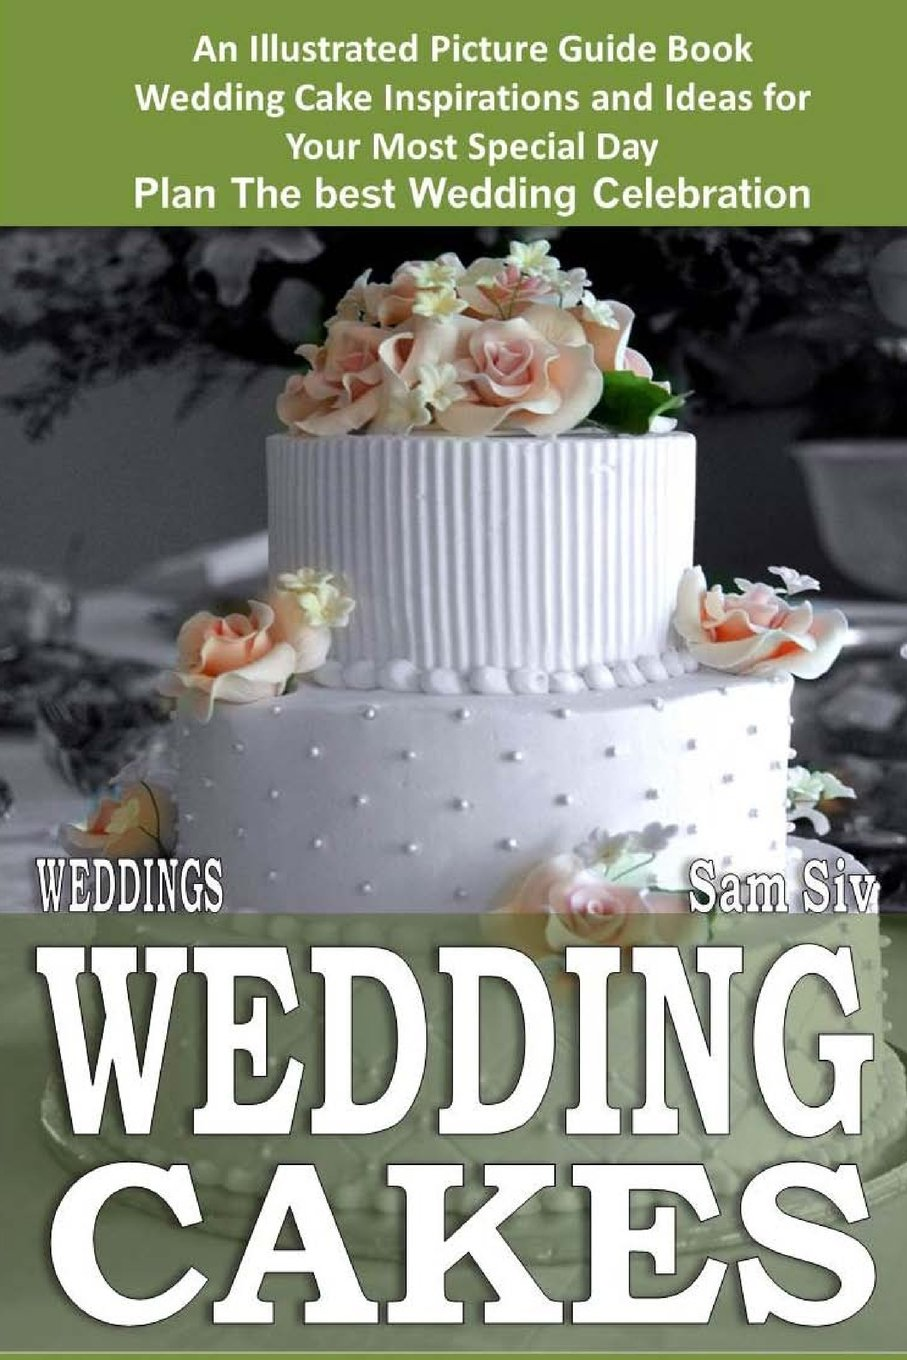 Sam Wedding Cake.Weddings Wedding Cakes An Illustrated Picture Guide Book Wedding